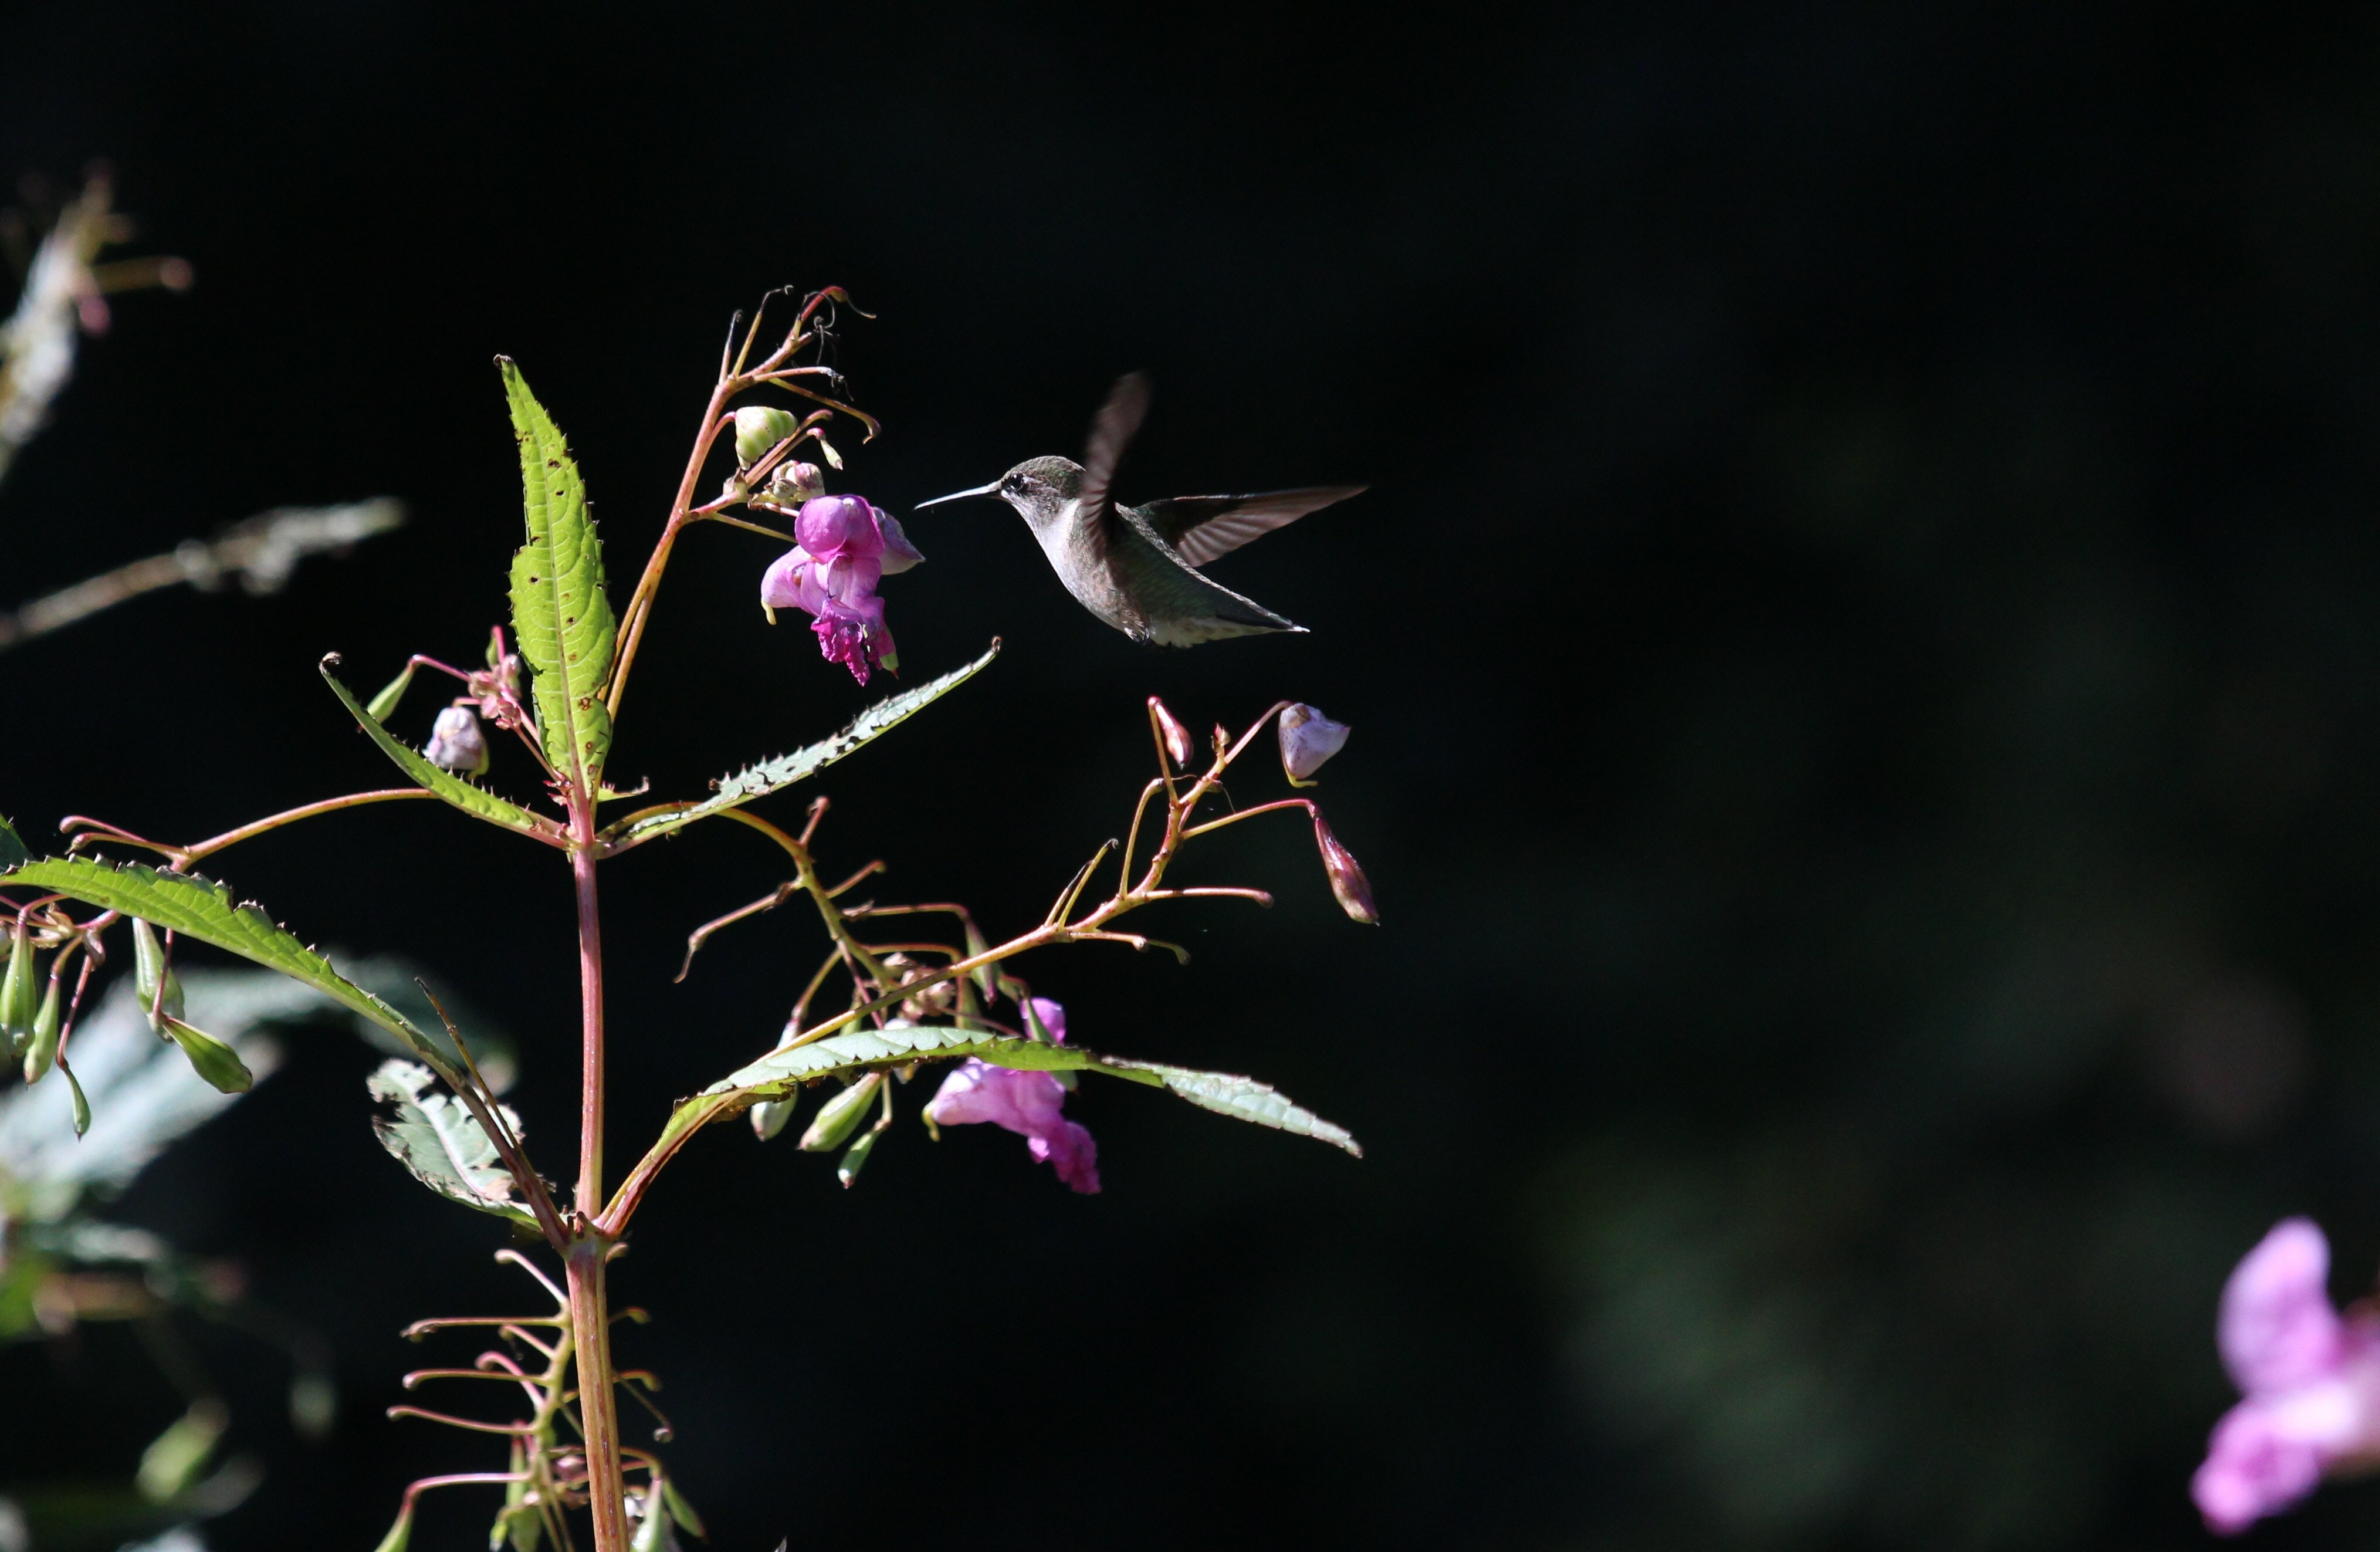 A hummingbird in flight above a purple flower in High Park